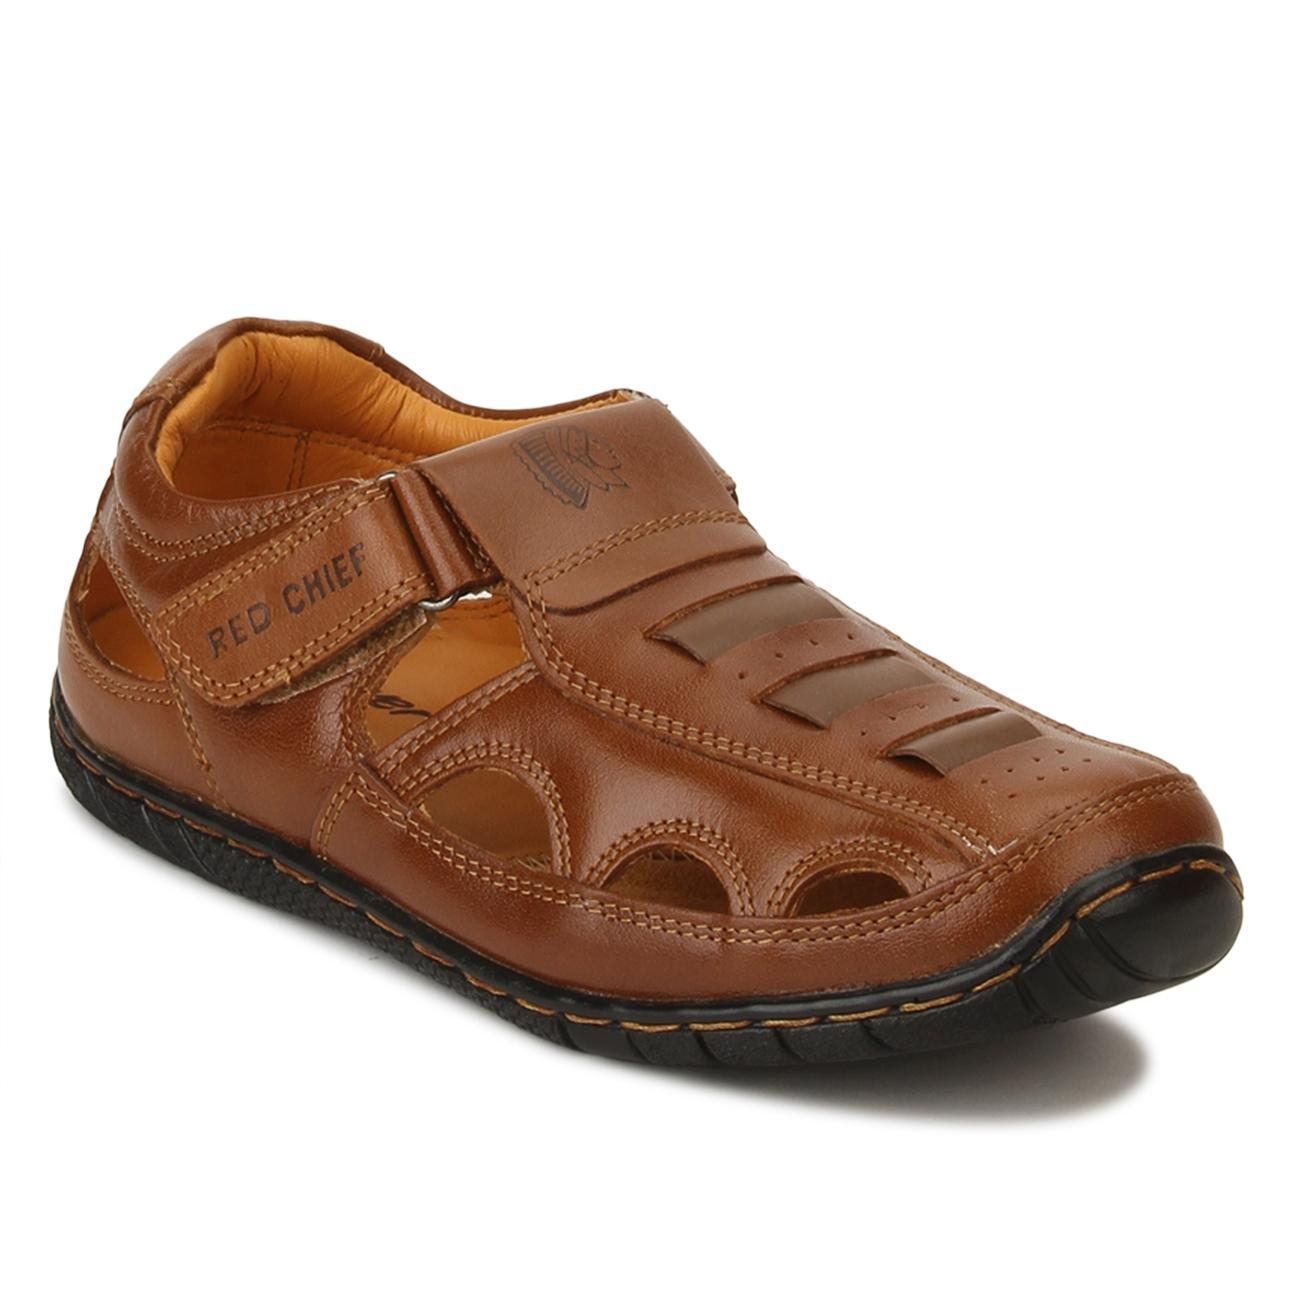 6392e5fa2 Leather Sandals For Men